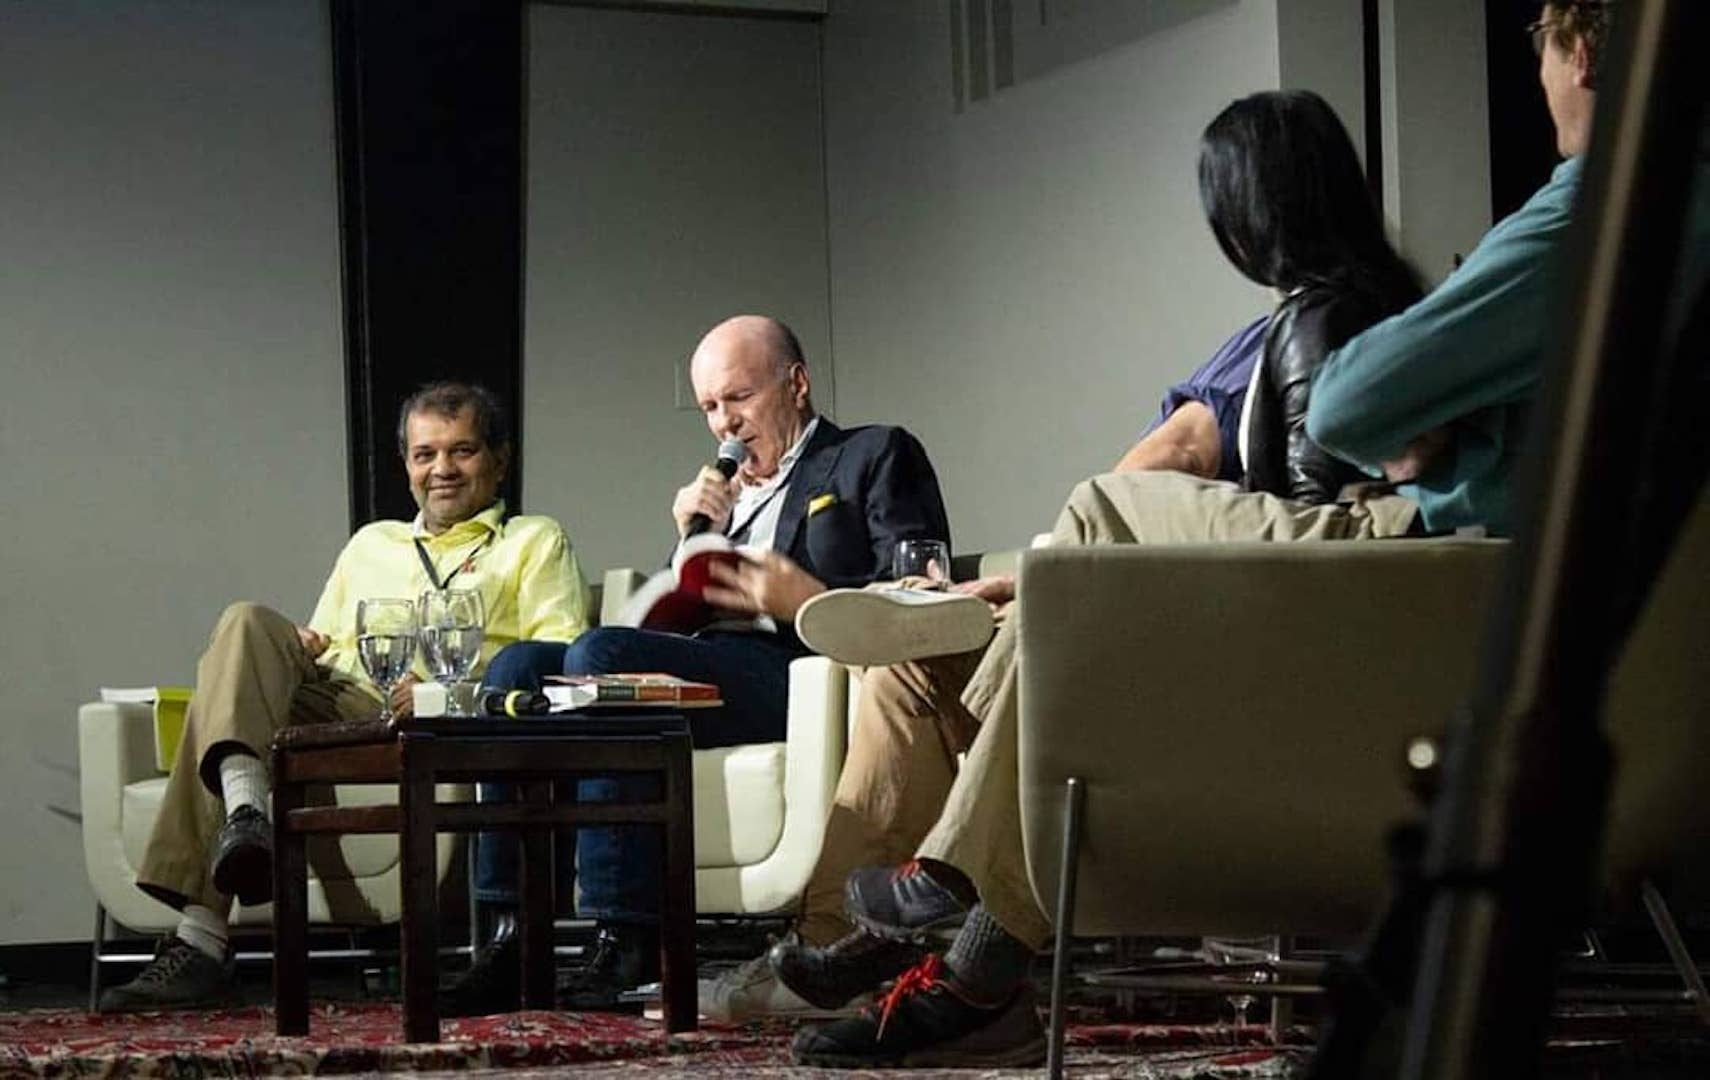 William Dalrymple at Jaipur Lit Fest 2019